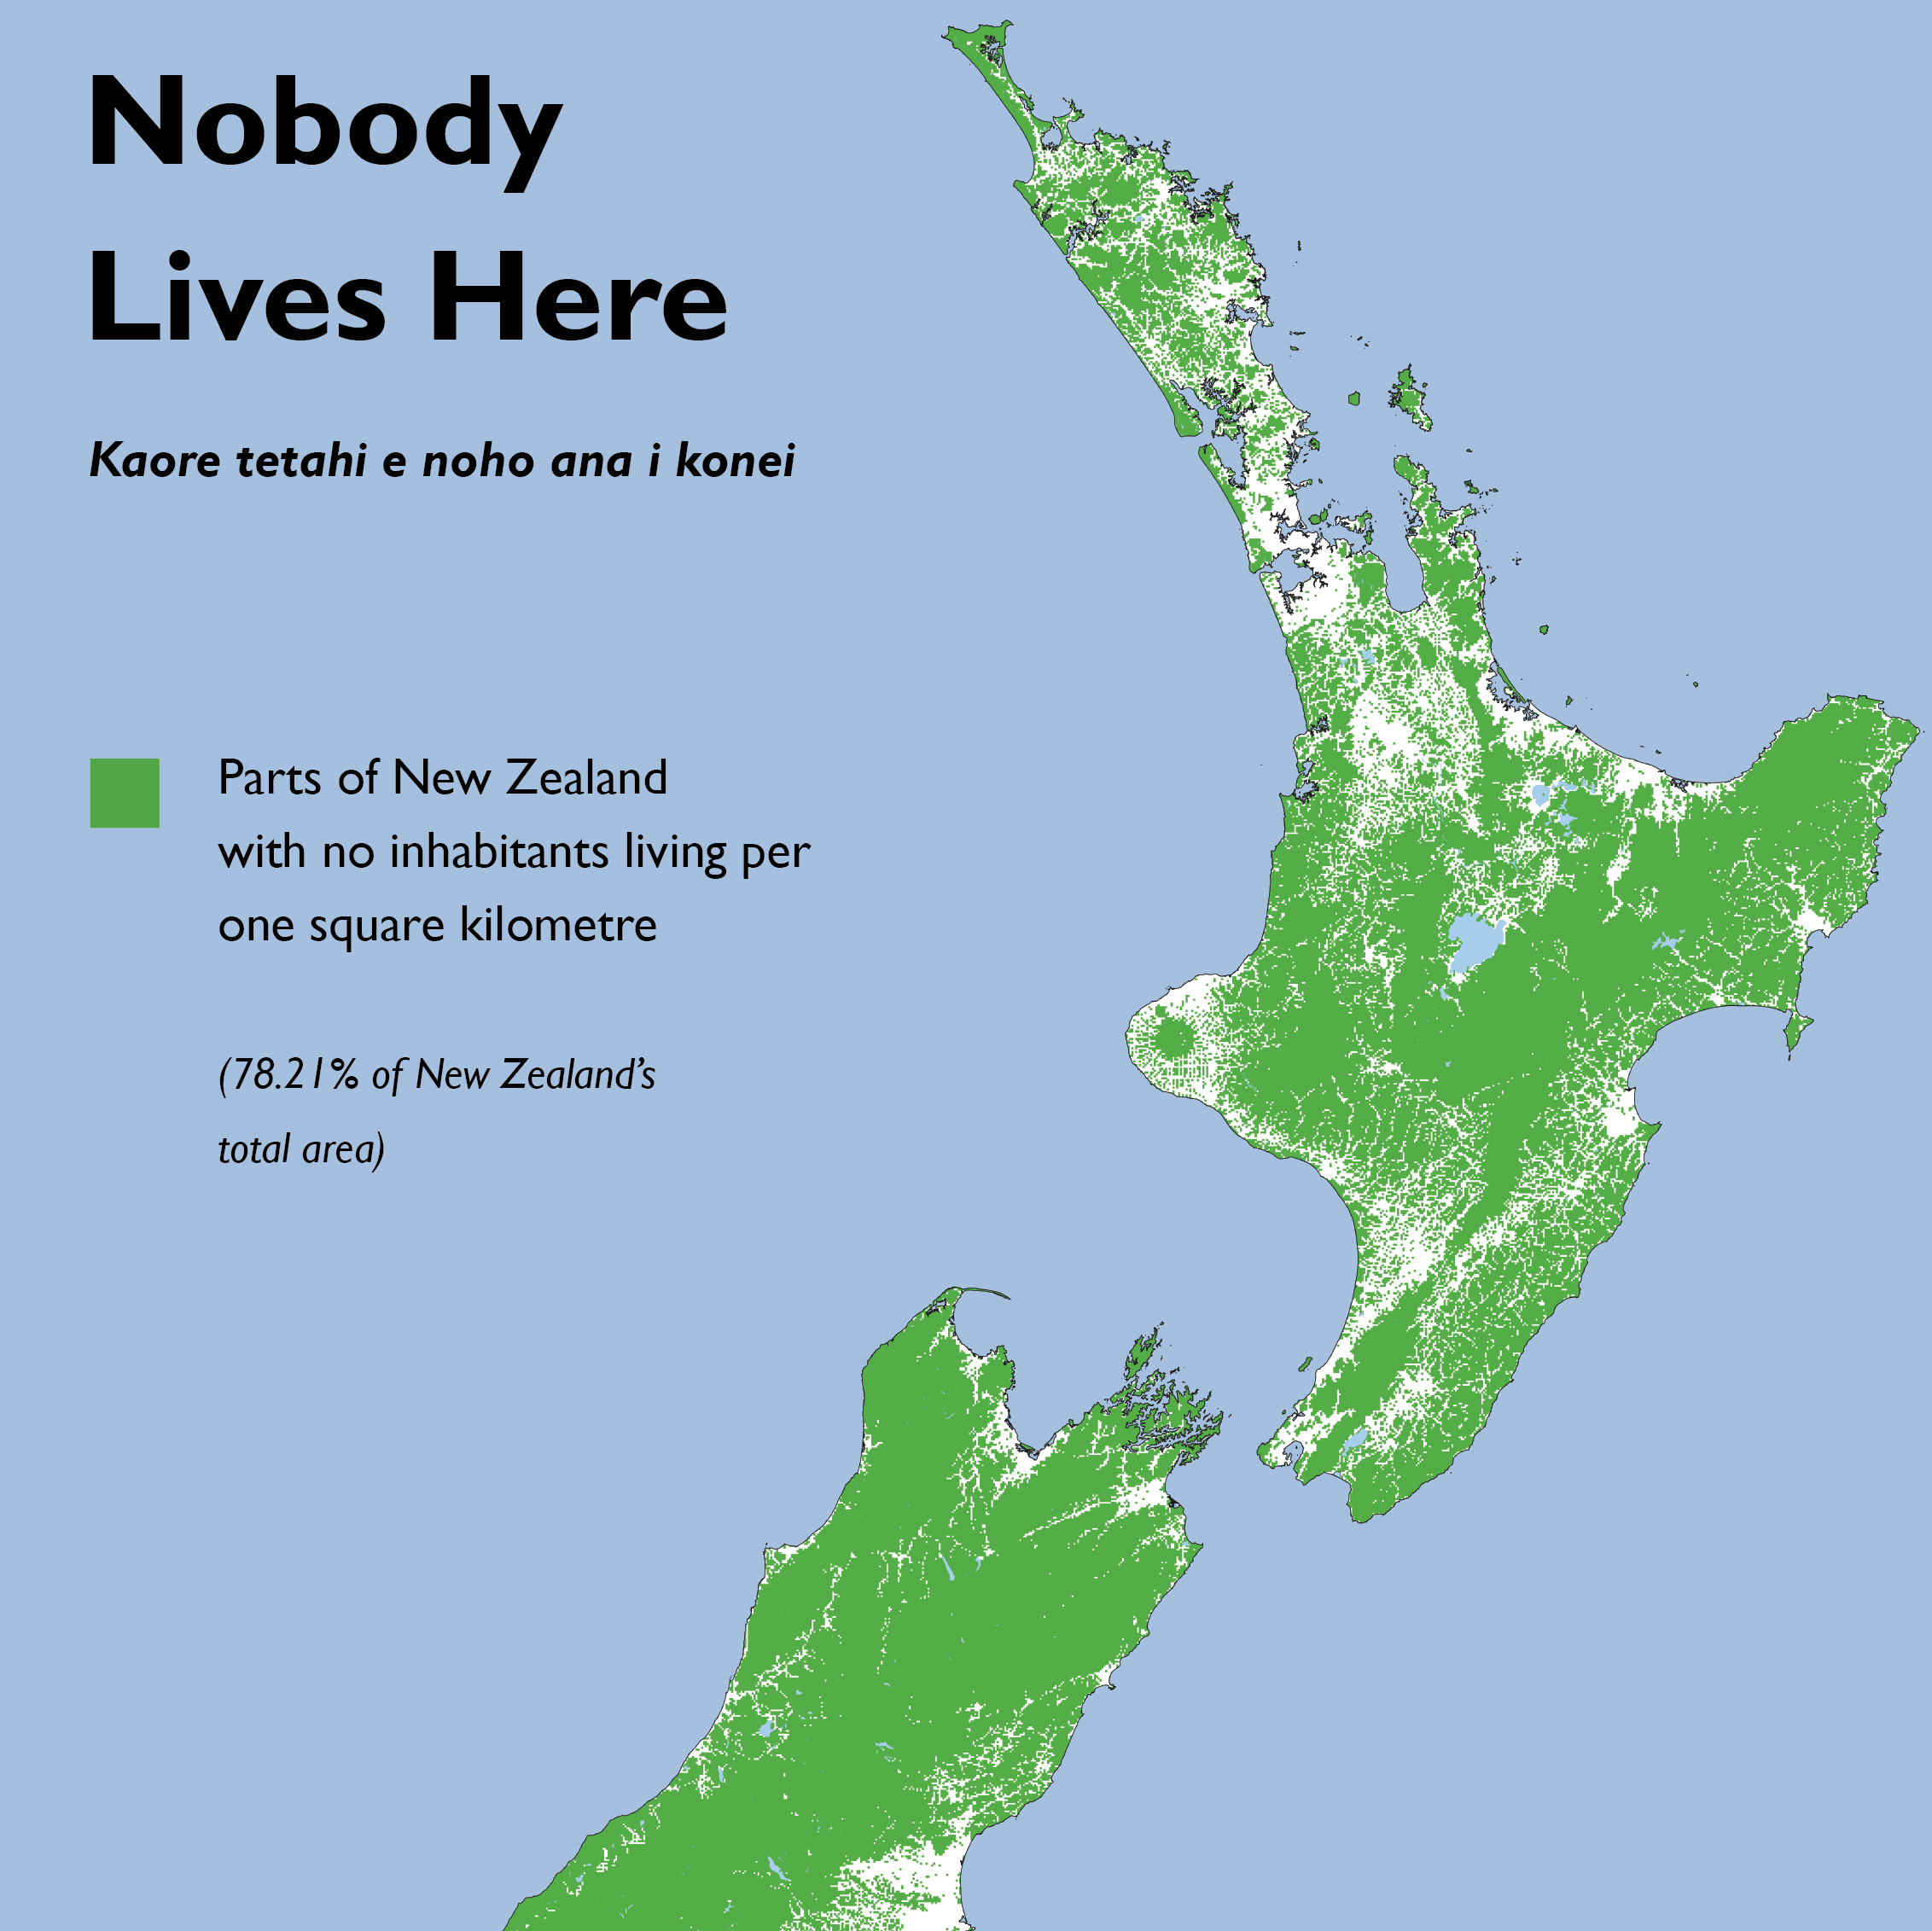 Nobody Lives Here: Uninhabited Areas of New Zealand